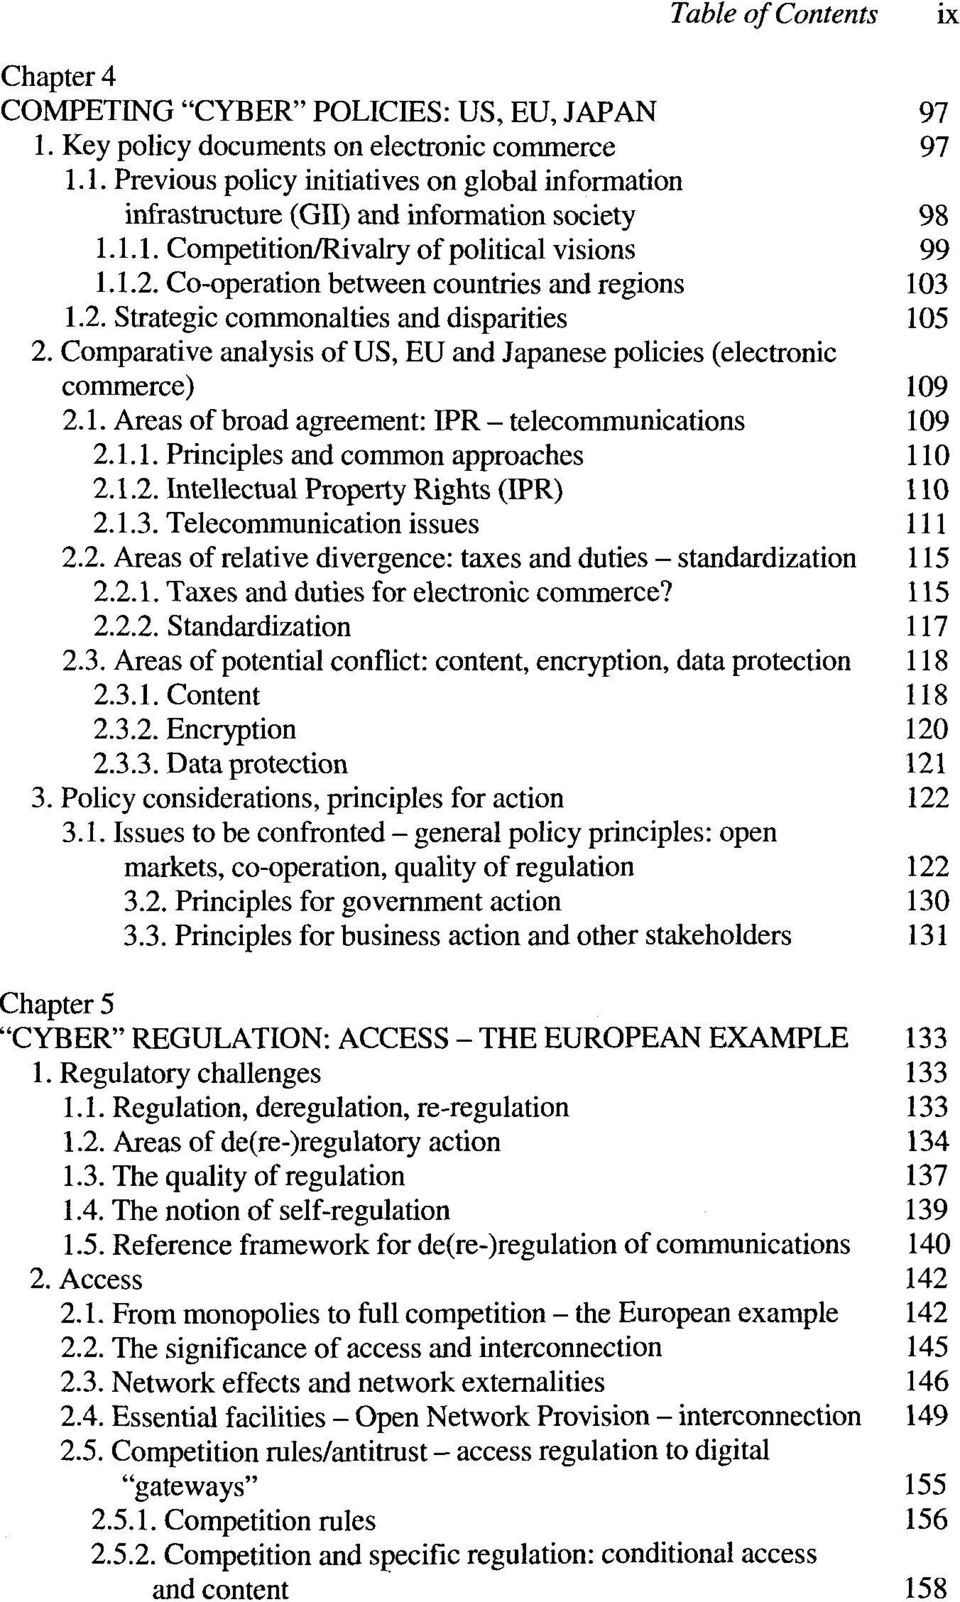 Comparative analysis of US, EU and Japanese policies (electronic commerce) 109 2.1. Areas of broad agreement: IPR - telecommunications 109 2.1.1. Principles and common approaches 110 2.1.2. Intellectual Property Rights (IPR) 110 2.